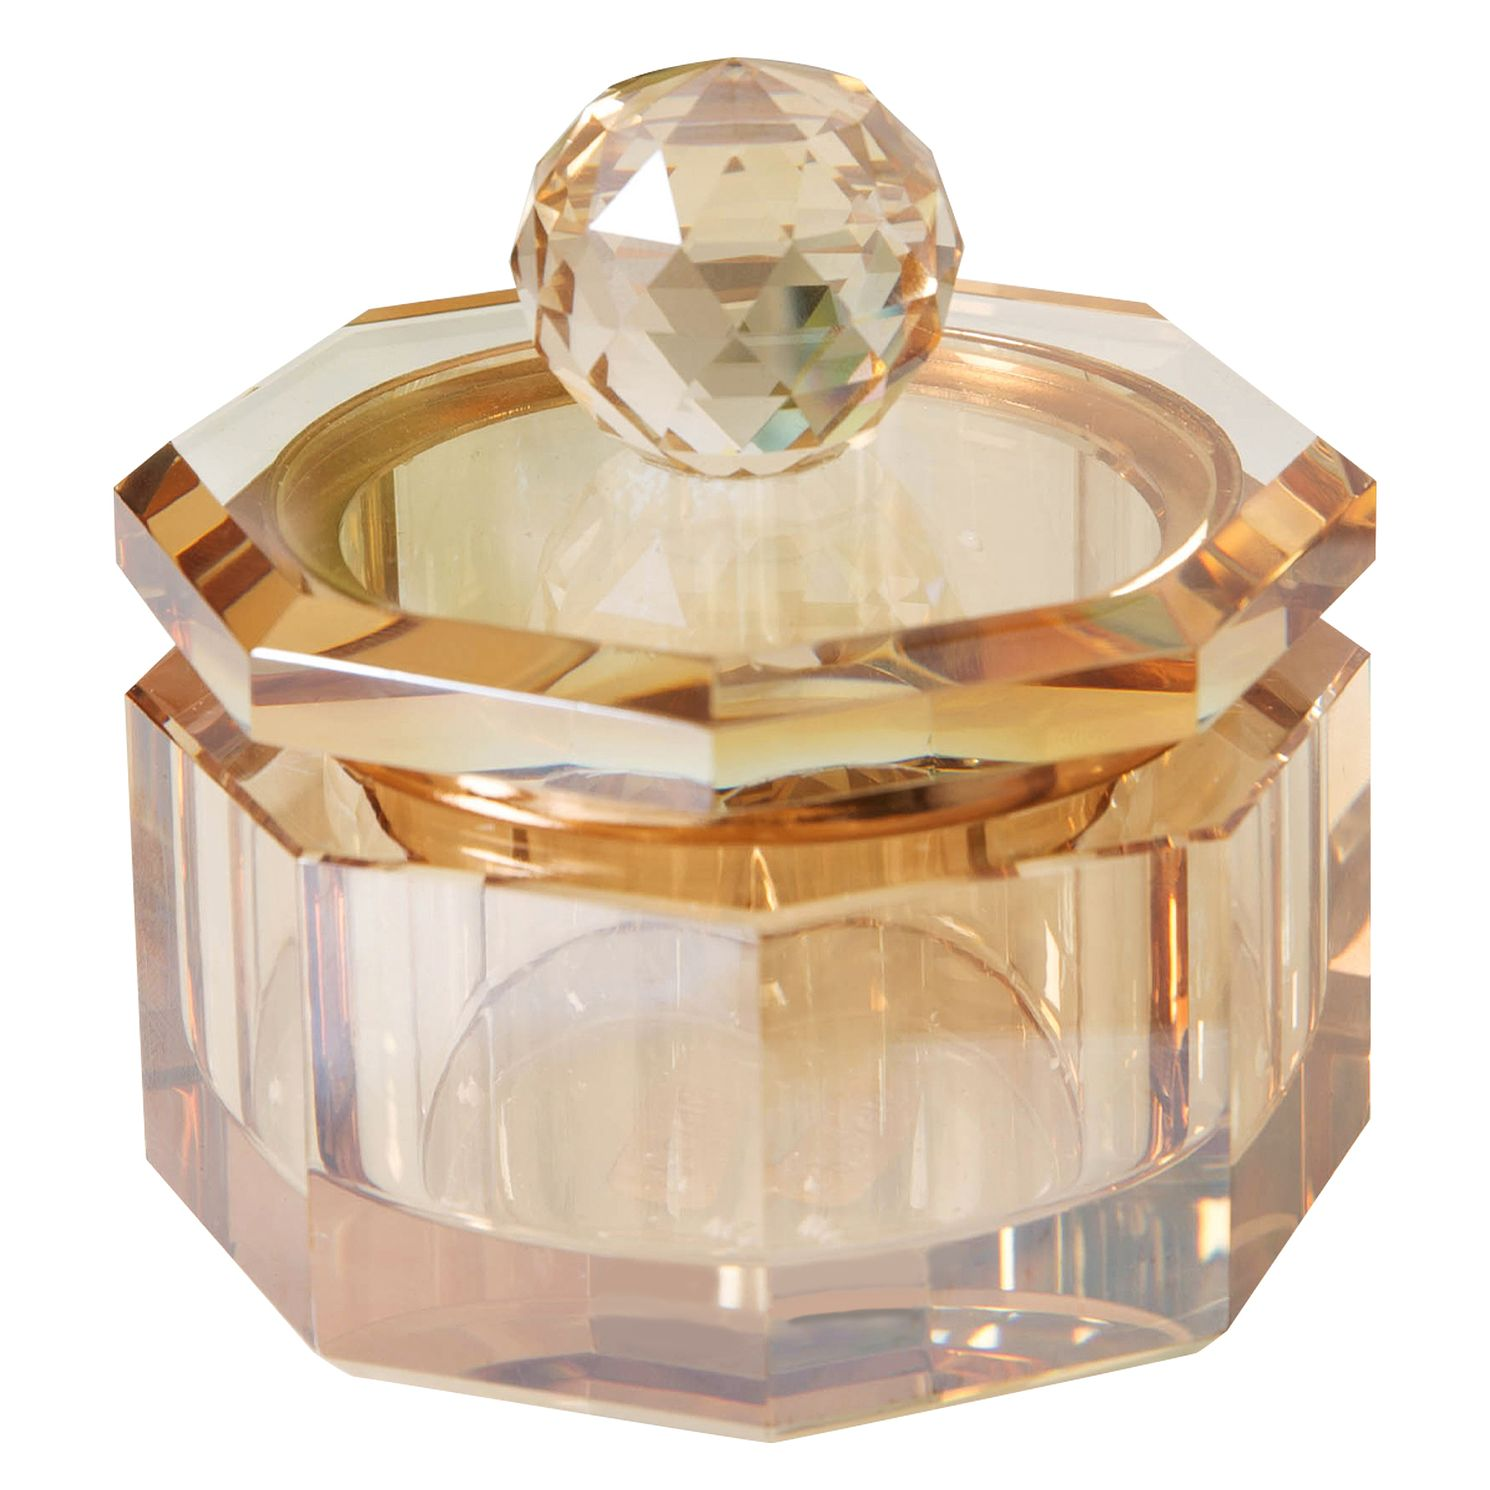 Sophia Estella Champagne Chic Trinket Box - Product number 8196486